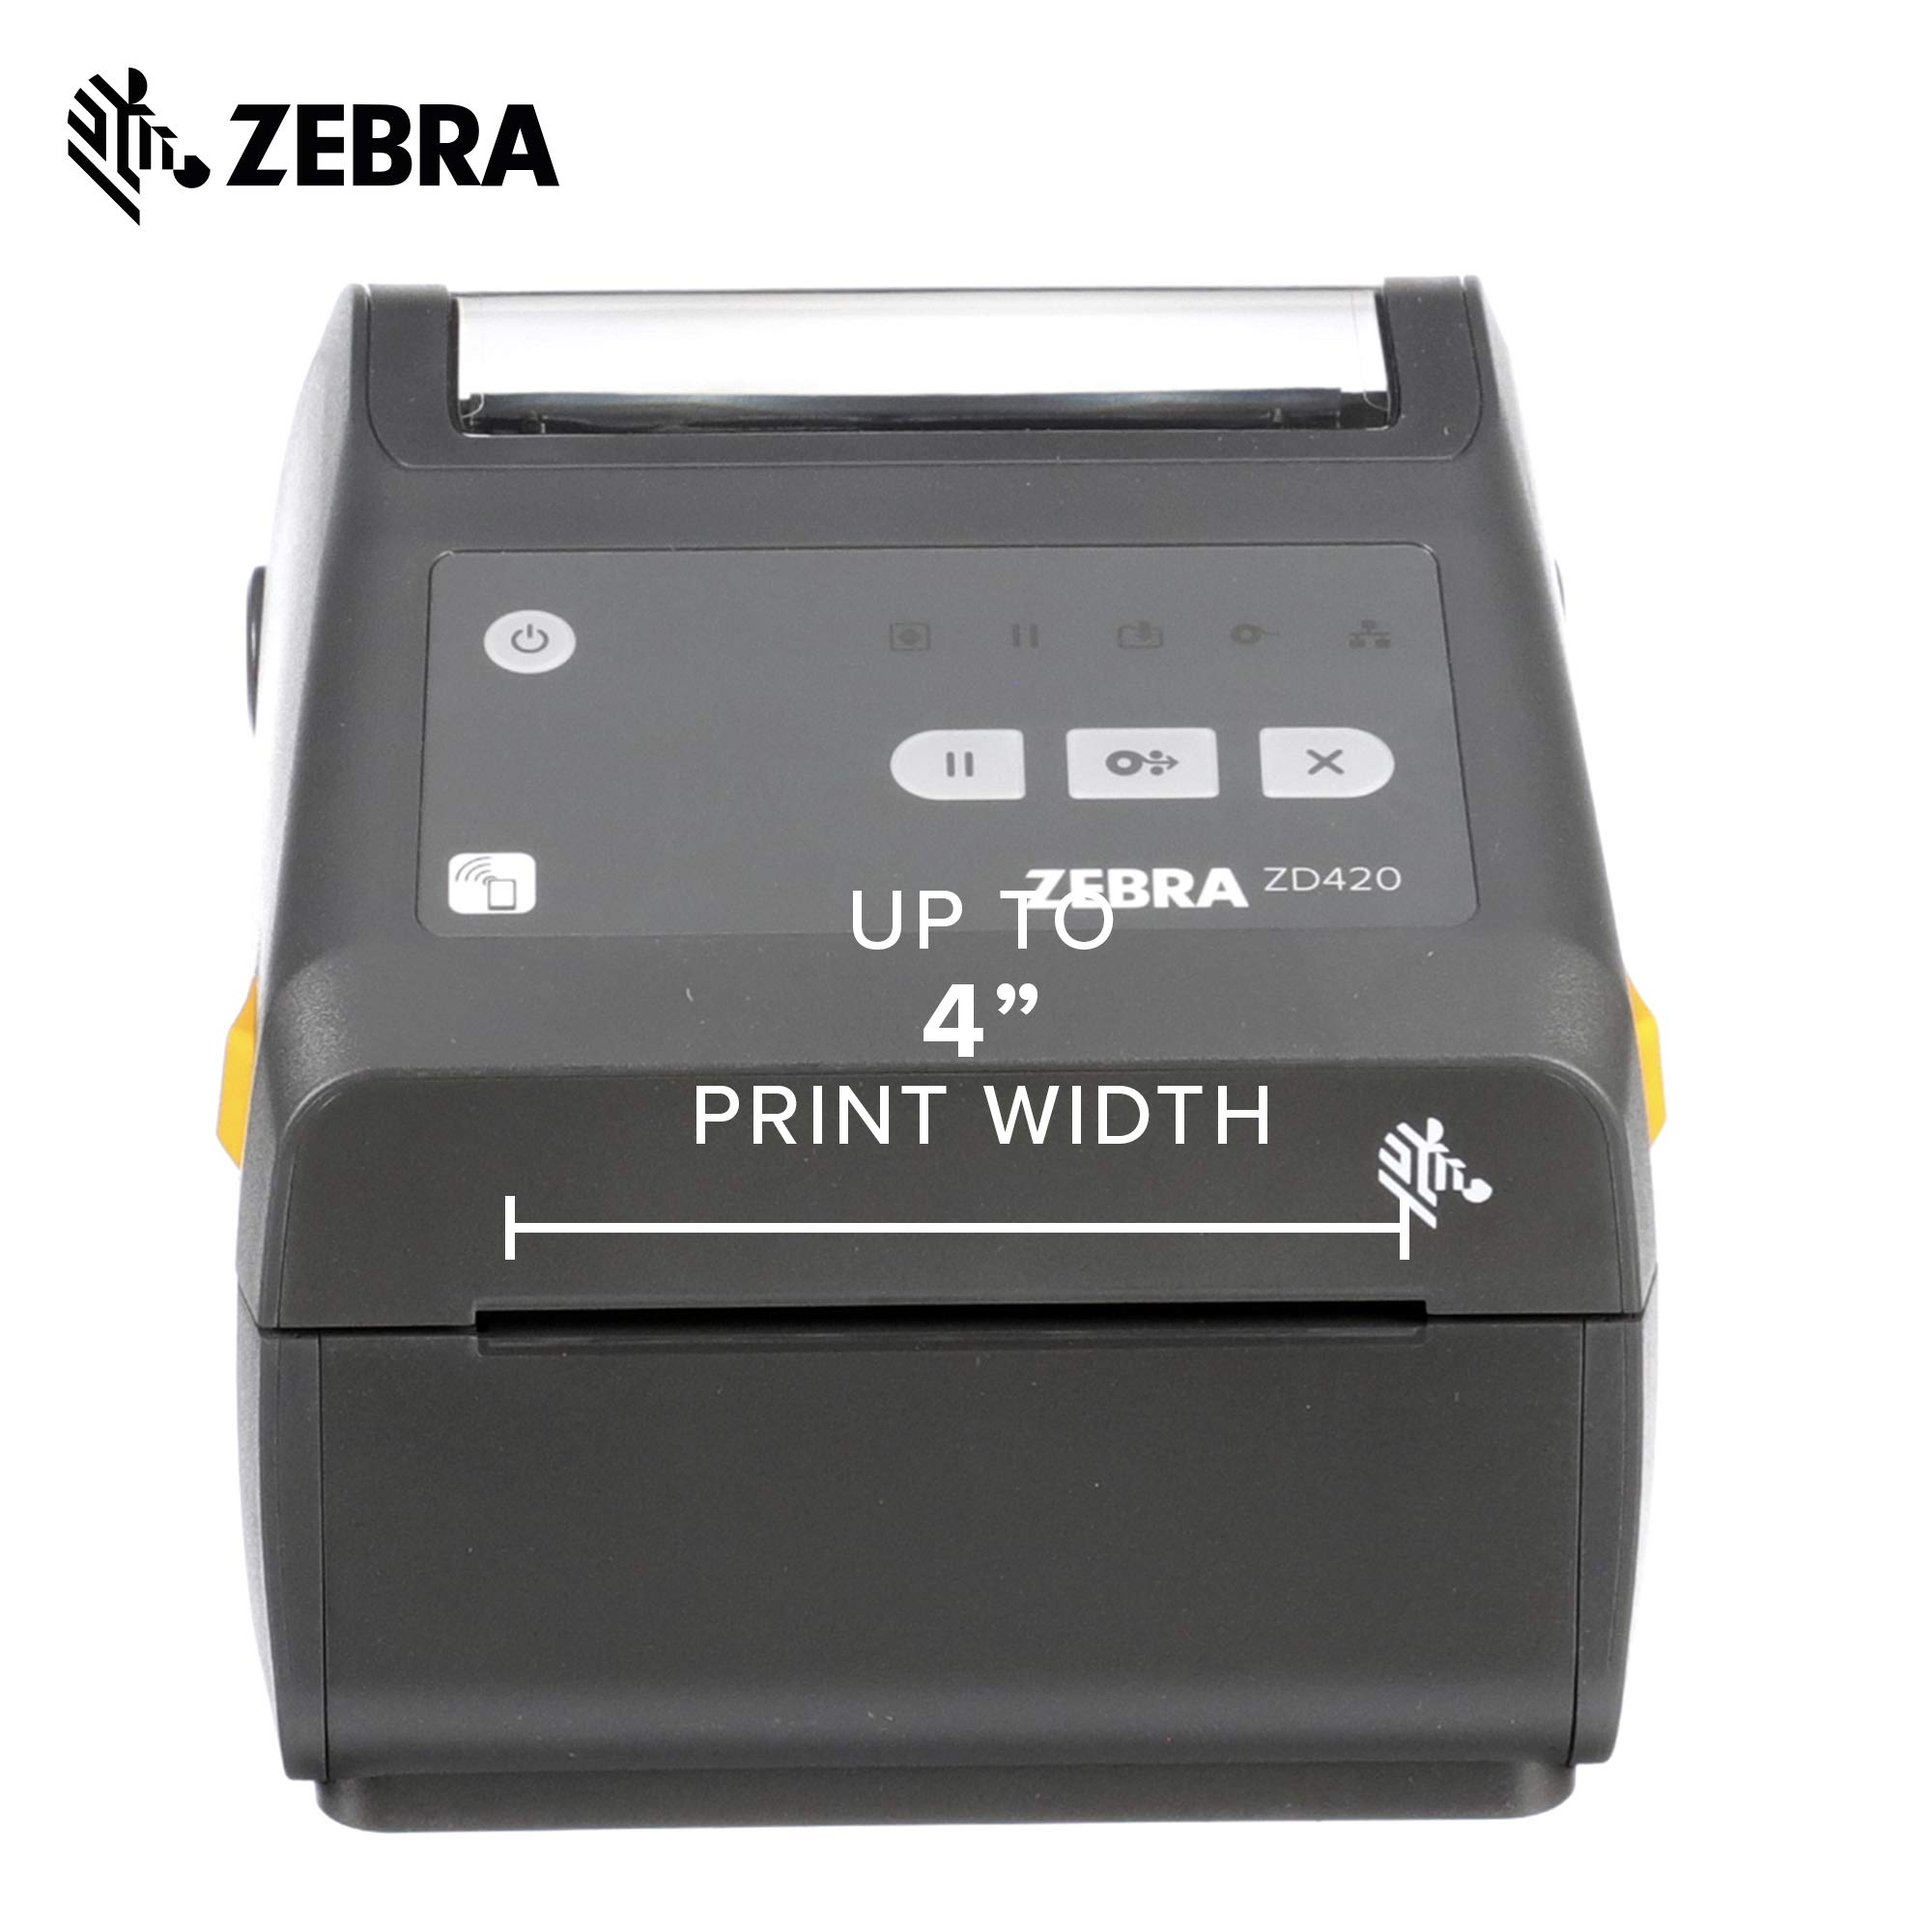 Zebra - ZD420d Direct Thermal Desktop Printer for Labels and Barcodes - Print Width 4 in - 300 dpi - Interface: WiFi, Bluetooth, USB - ZD42043-D01W01EZ by Zebra Technologies (Image #3)